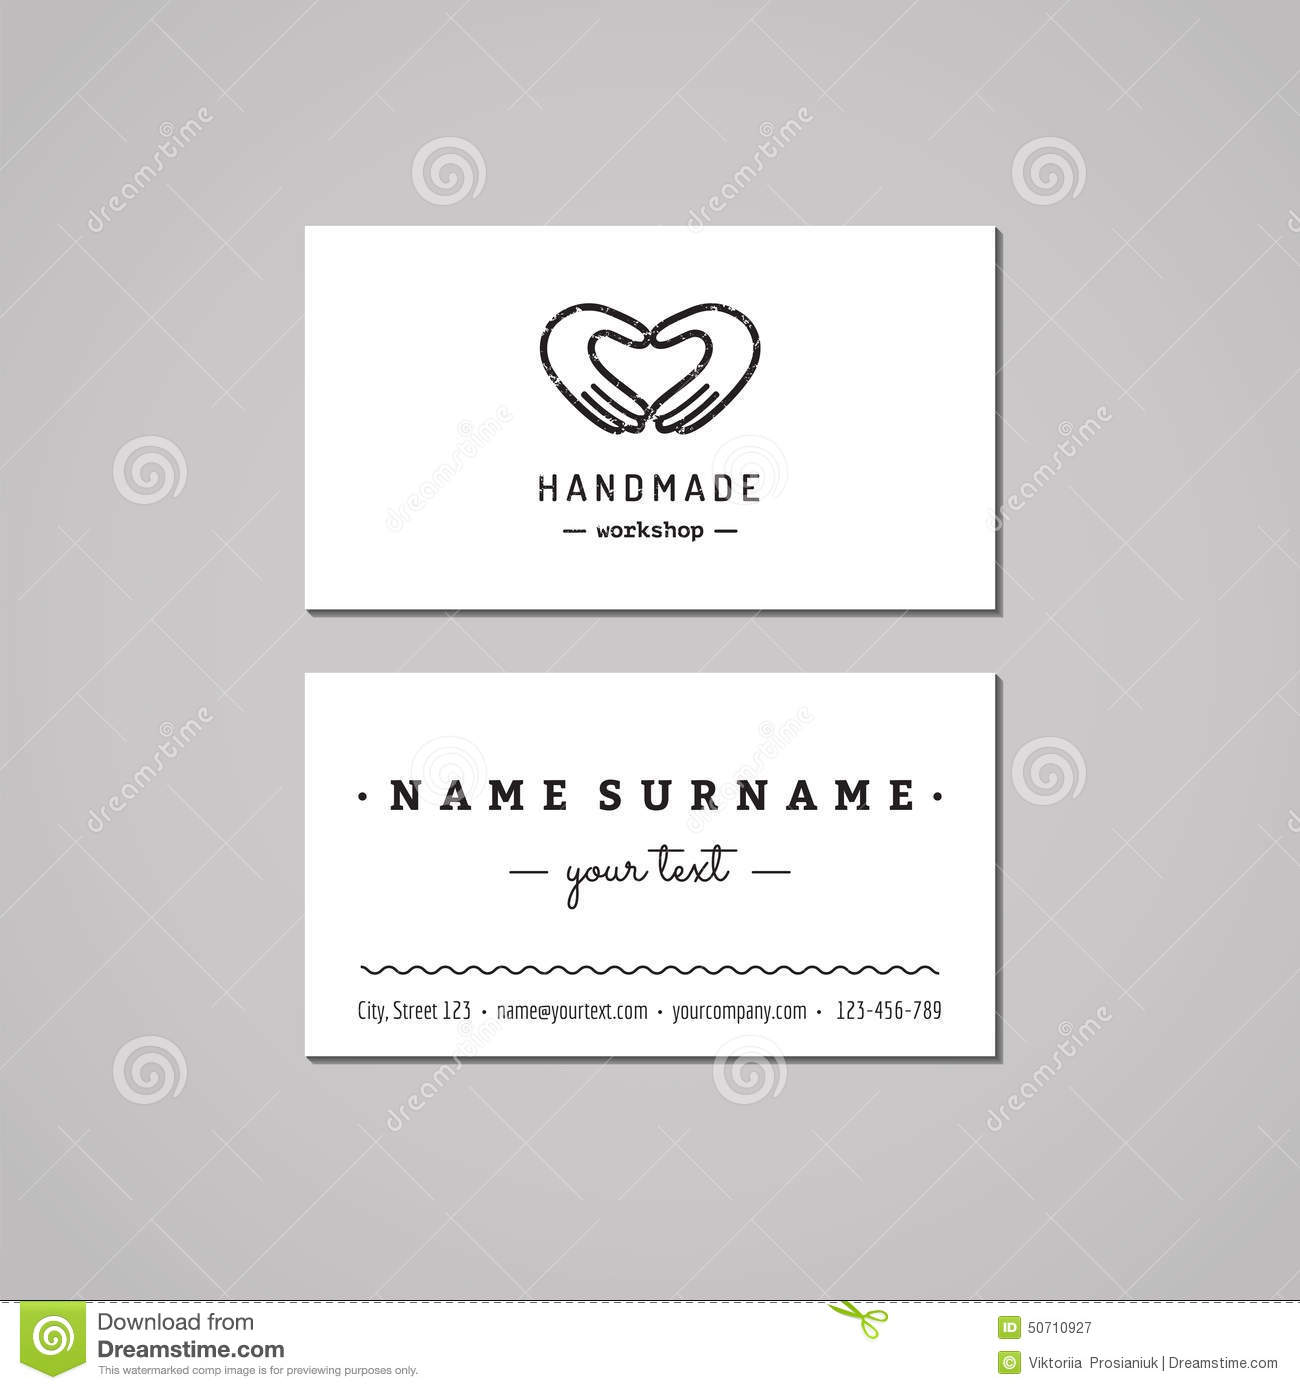 Handmade Workshop Business Card Design Concept Handmade Workshop